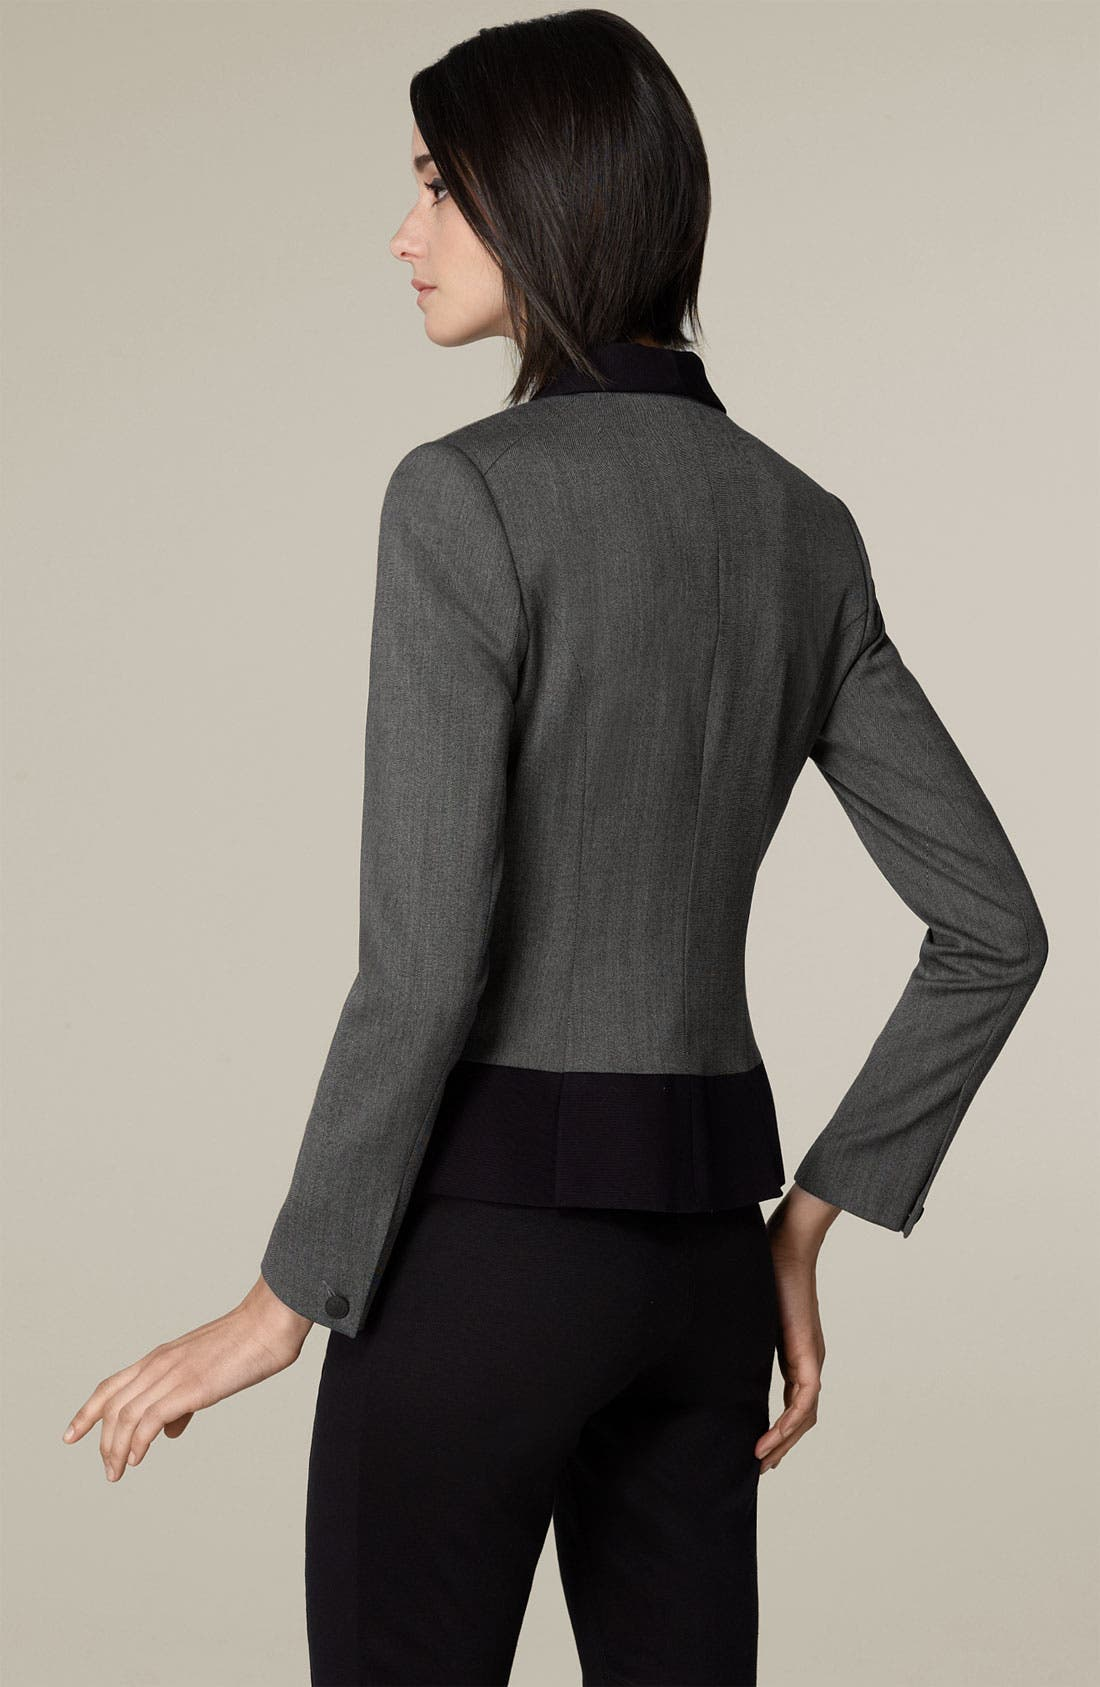 'Jem' One Button Stretch Wool Jacket,                             Alternate thumbnail 2, color,                             050